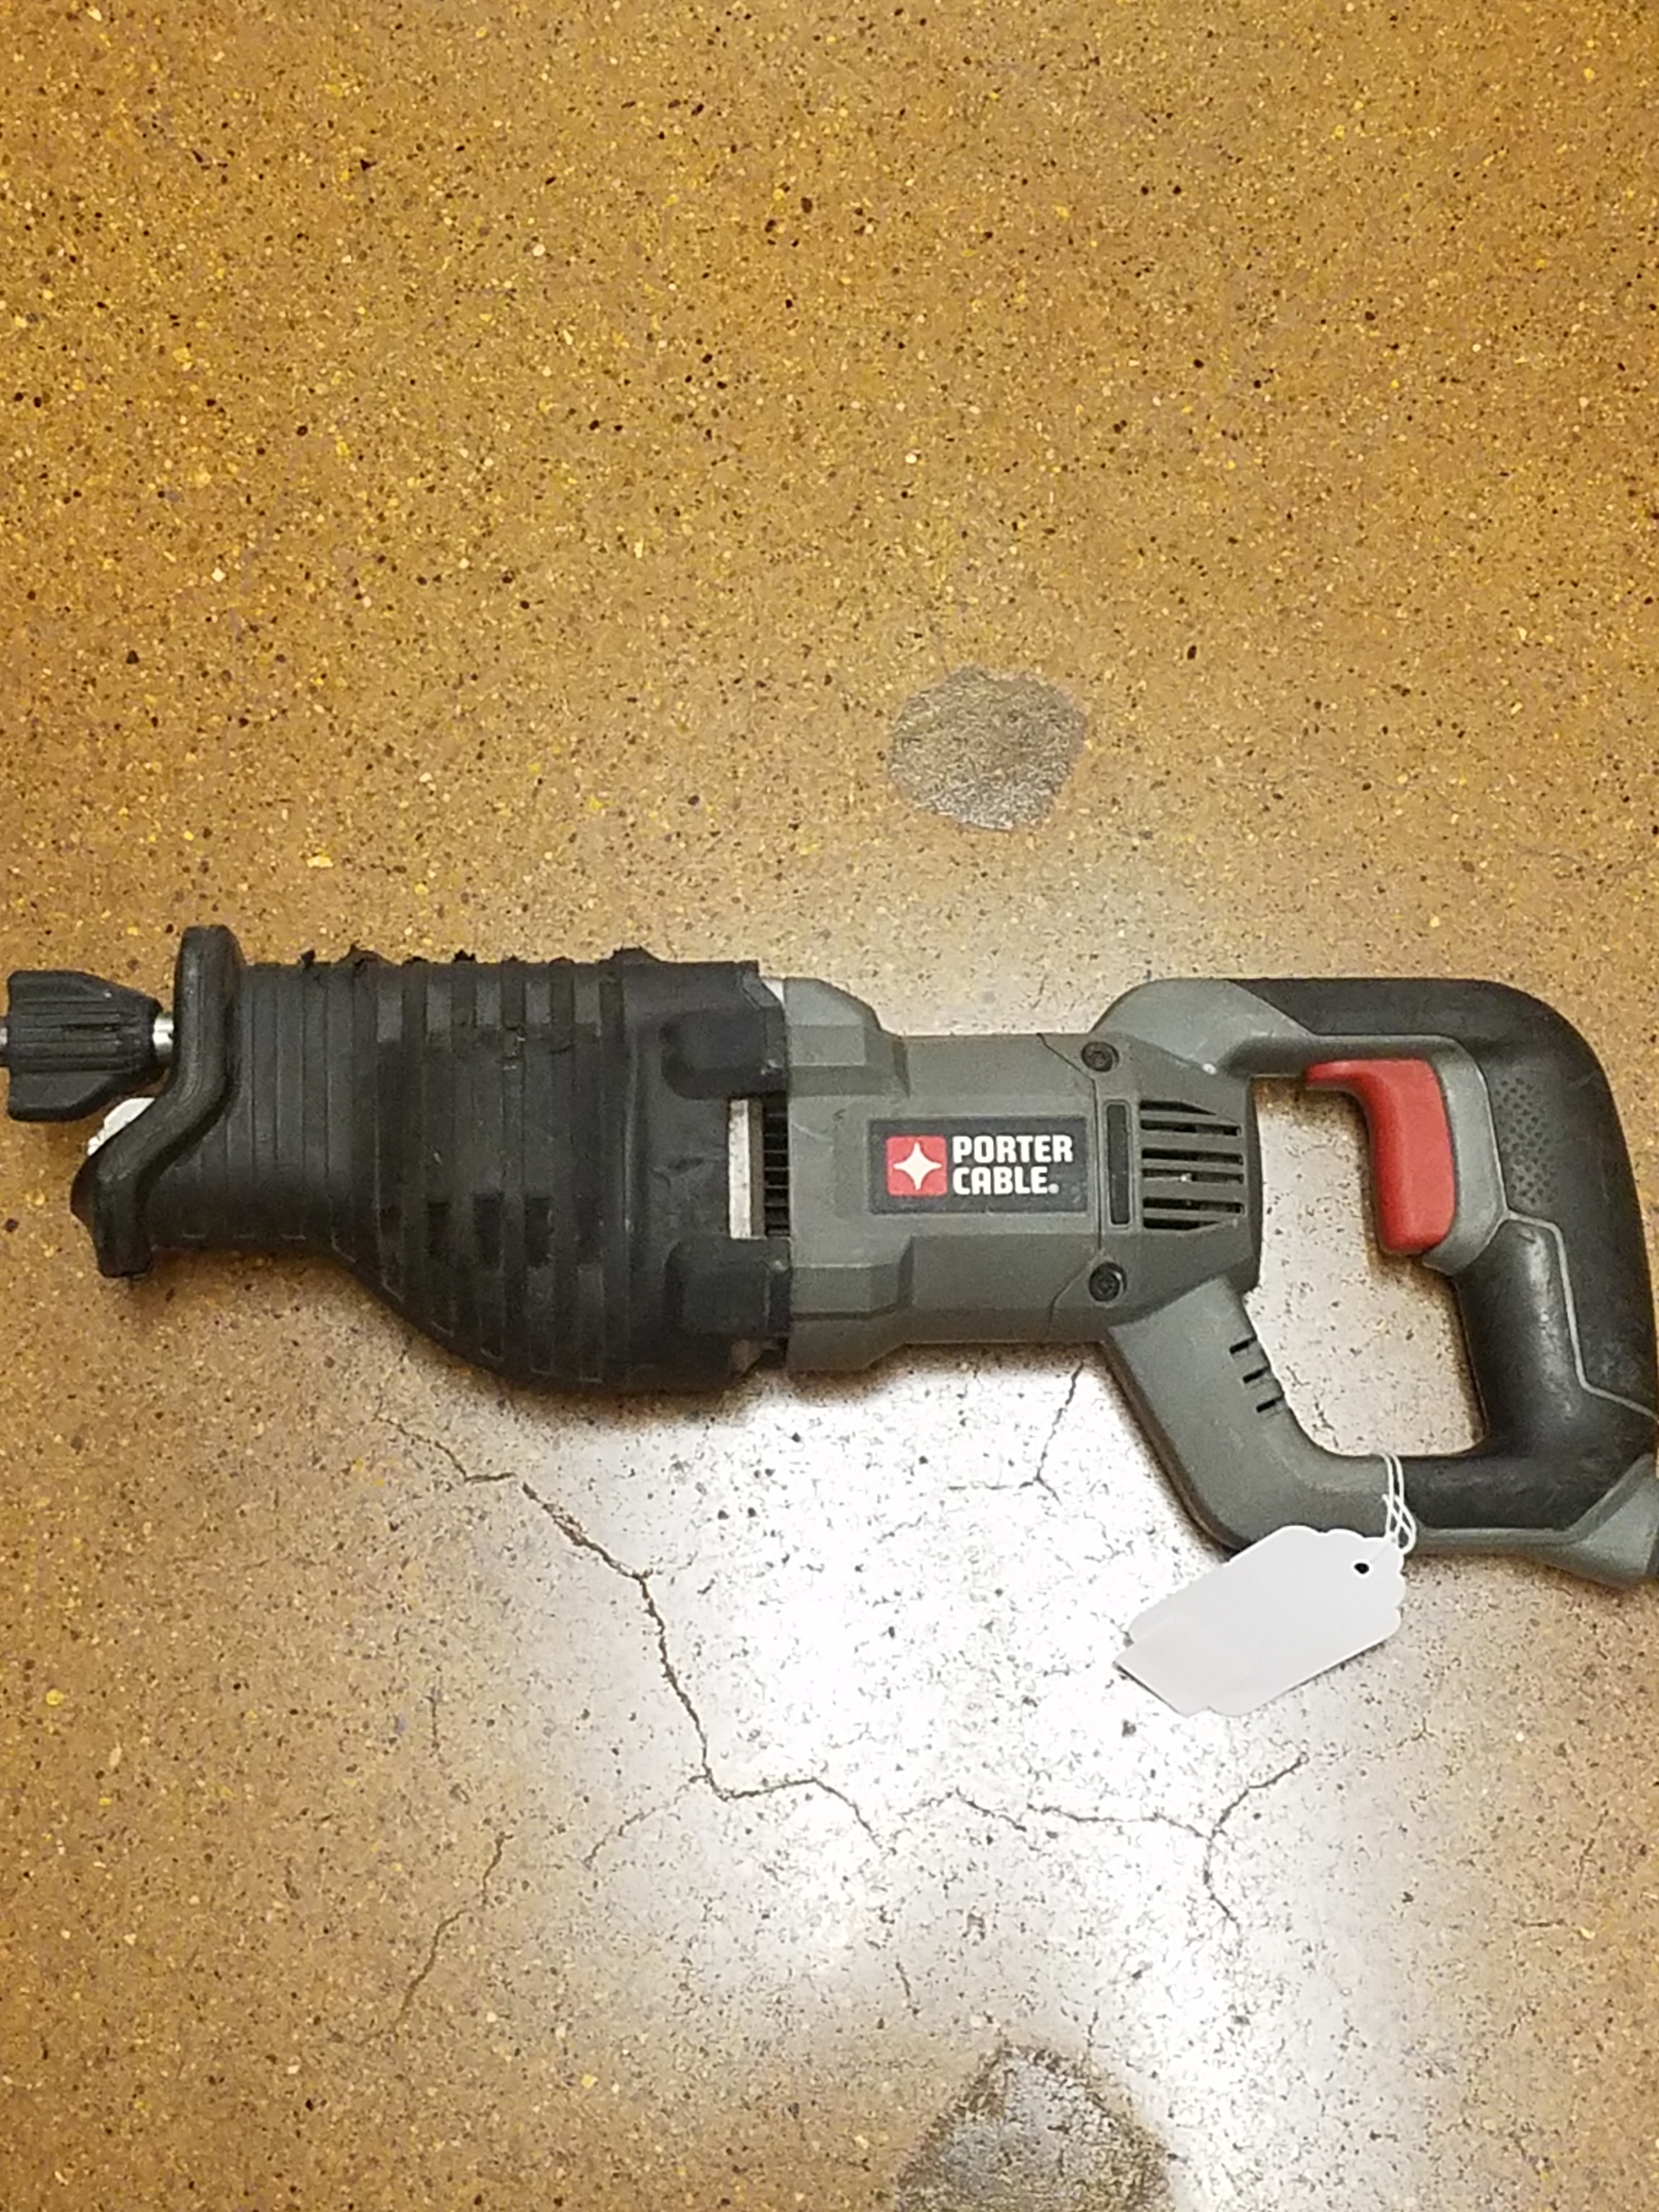 PORTER CABLE PC75TRS RECIPROCAL SAW